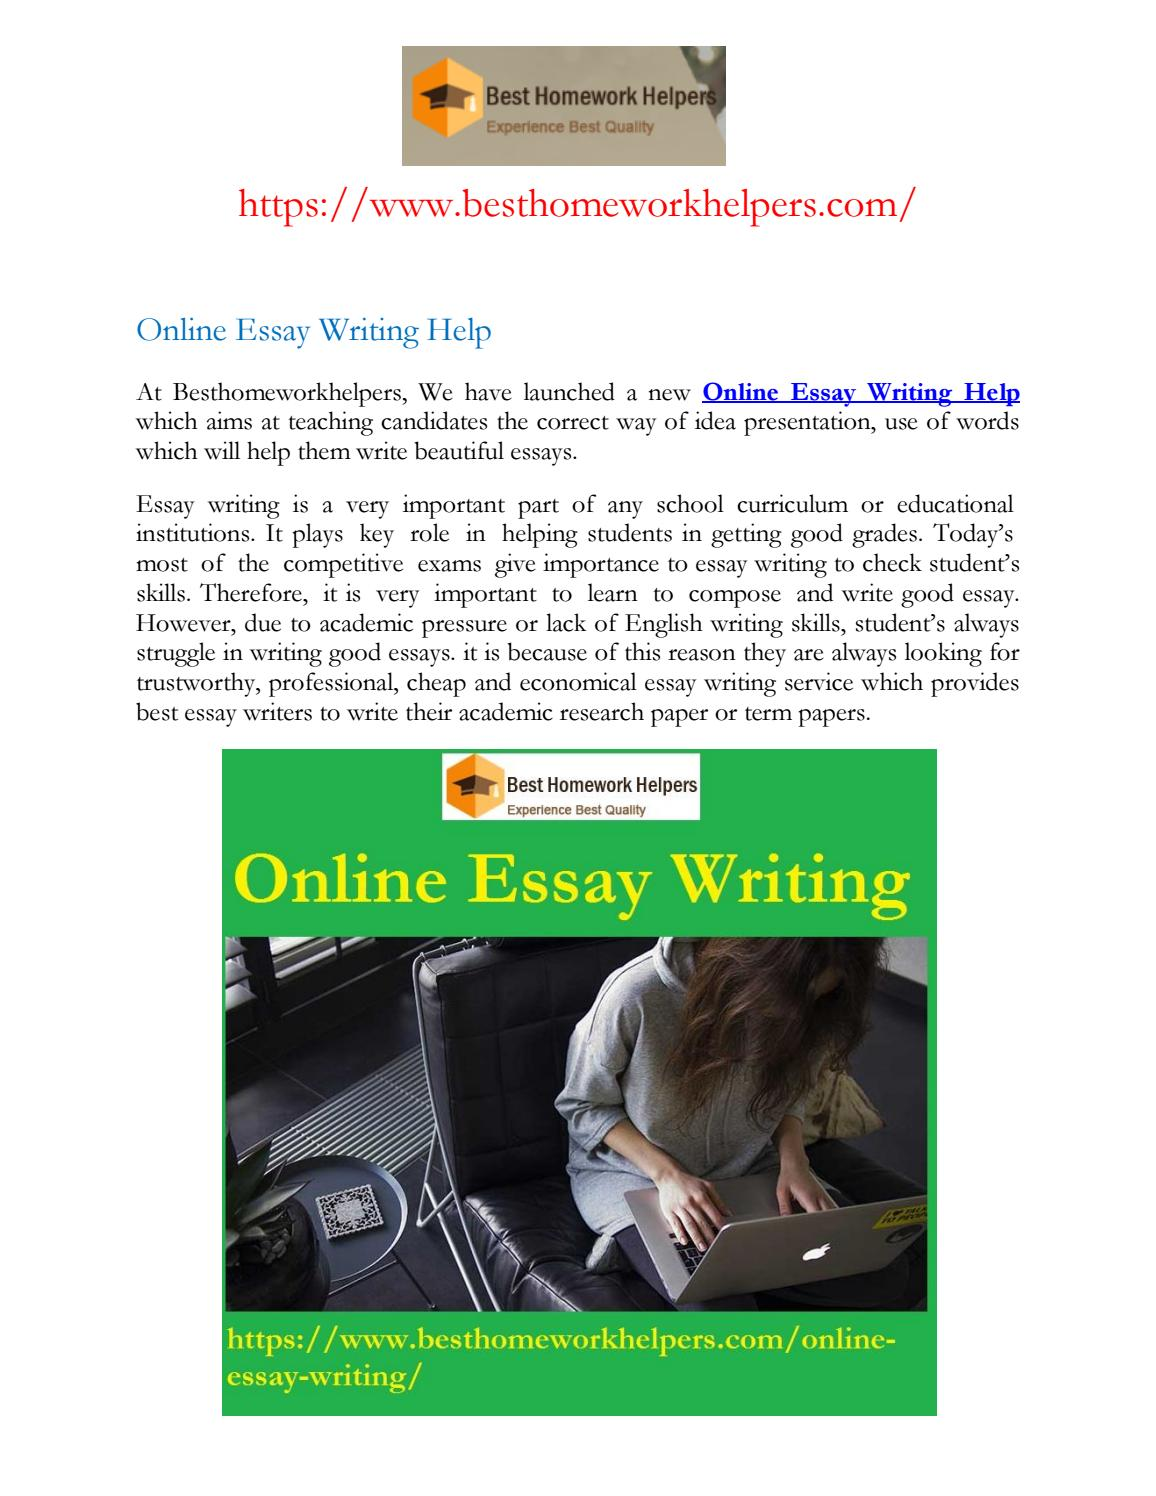 Online essay writing help what are good topics for a research paper